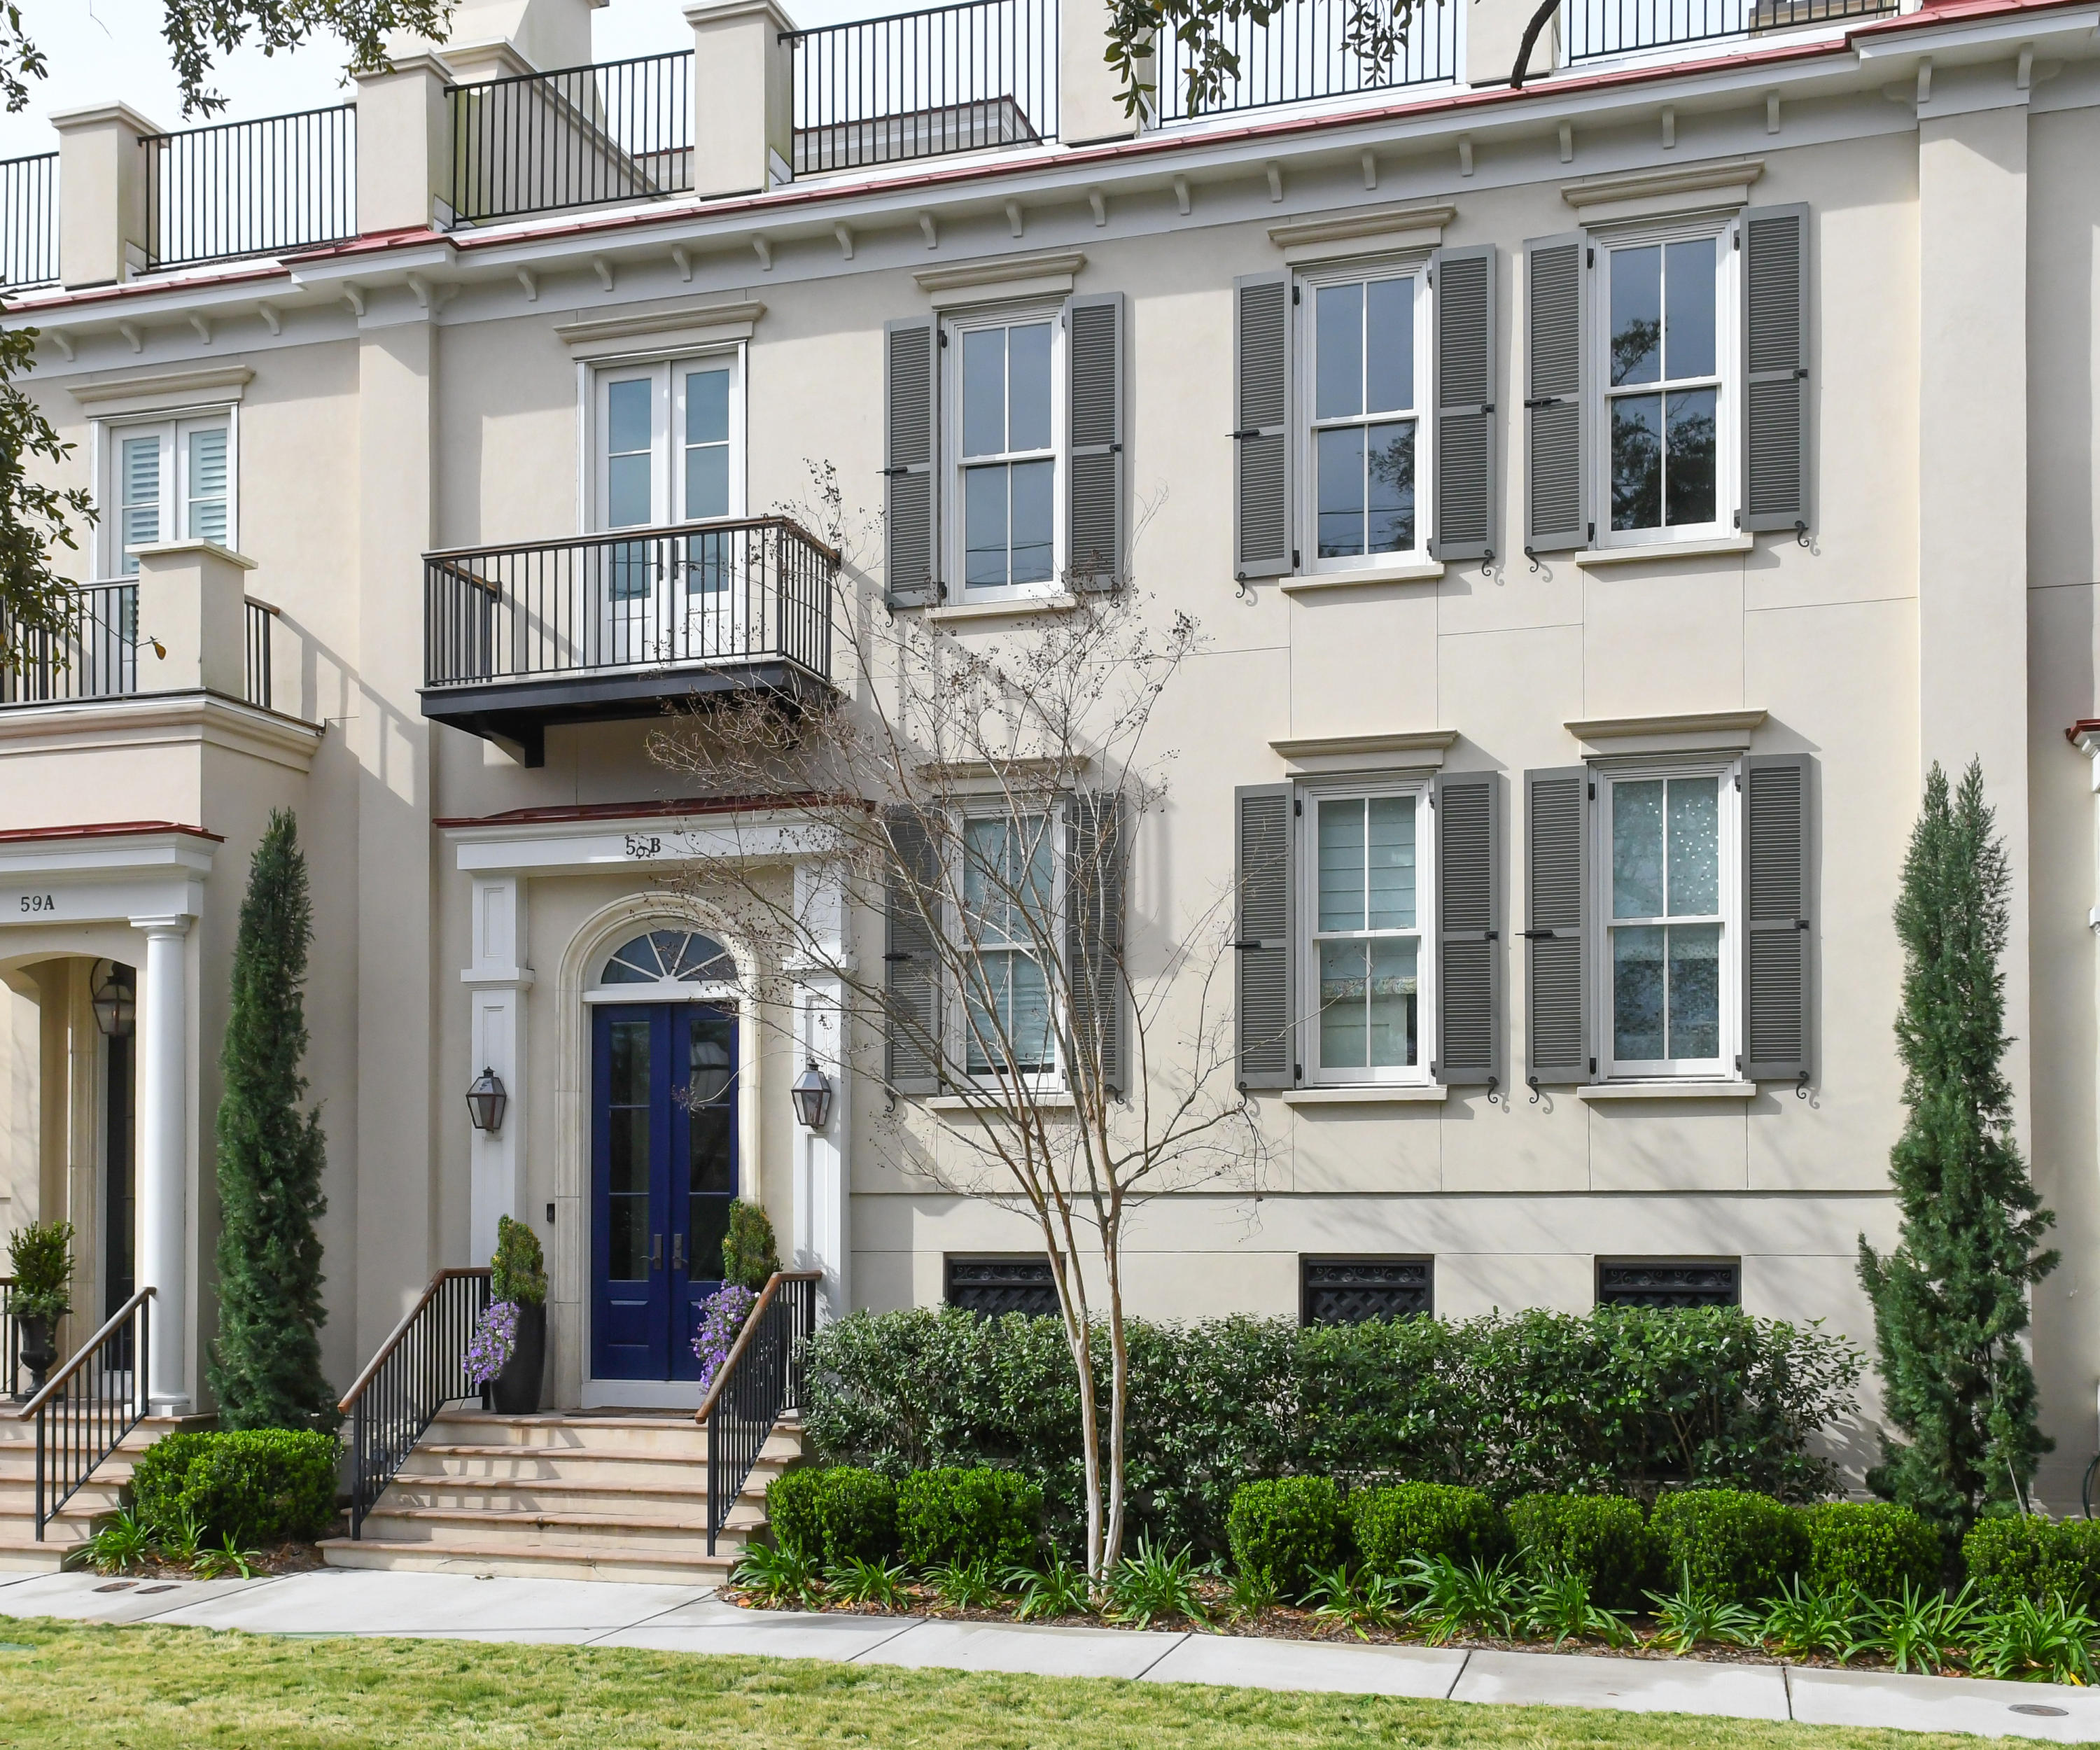 59 Barre Street Charleston, SC 29401